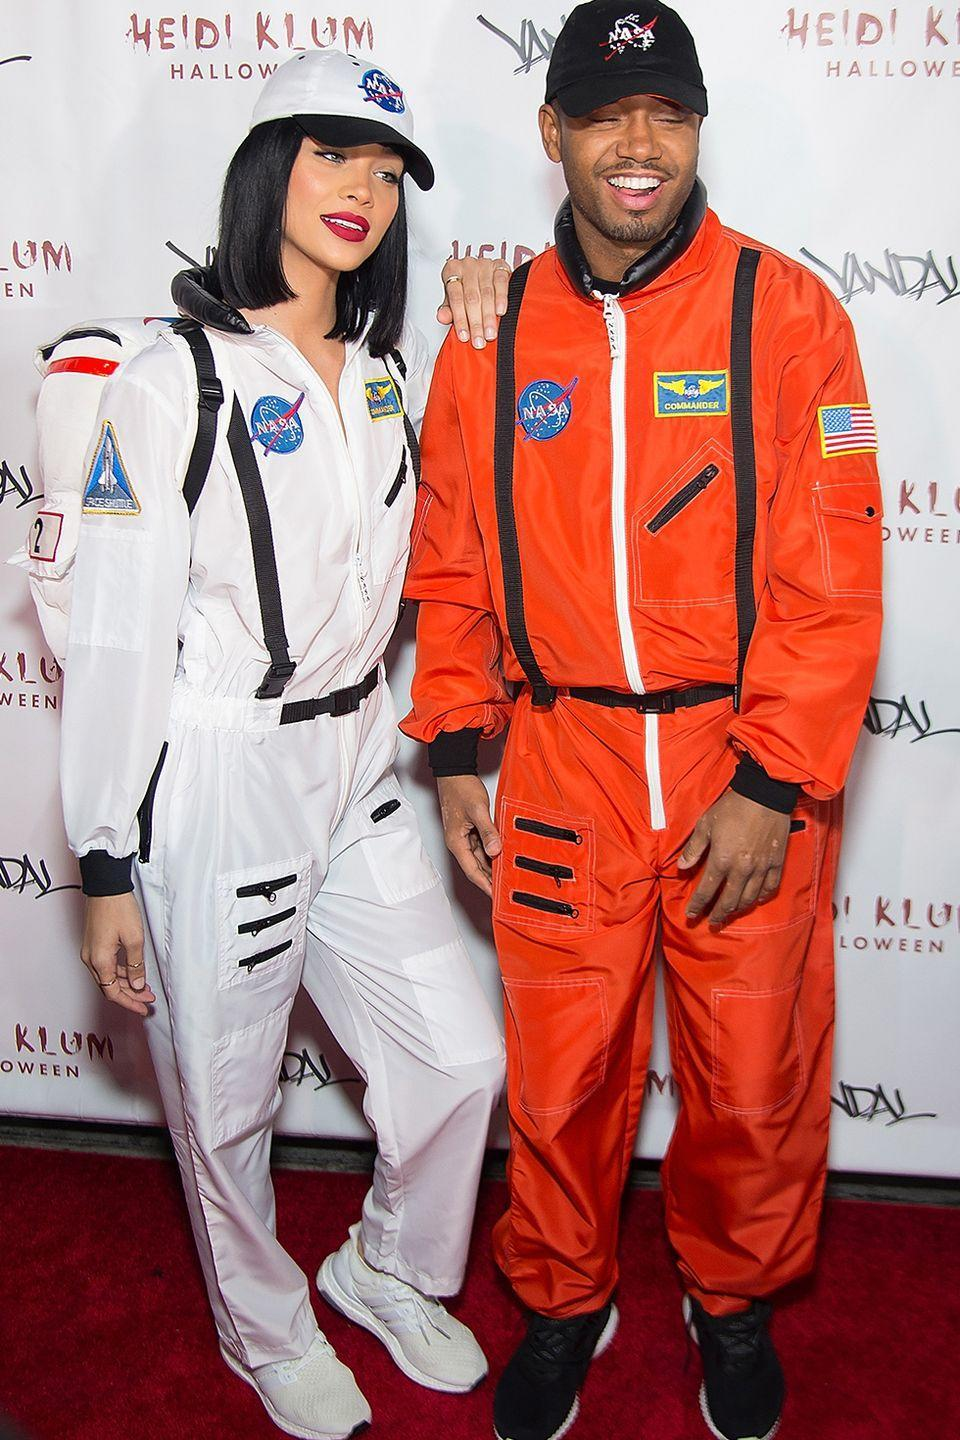 <p>In 2016, model Jasmine Sanders and actor Terrence J wore matching NASA astronaut costumes for Heidi Klum's 17th annual Halloween party at Vandal in New York City. </p>